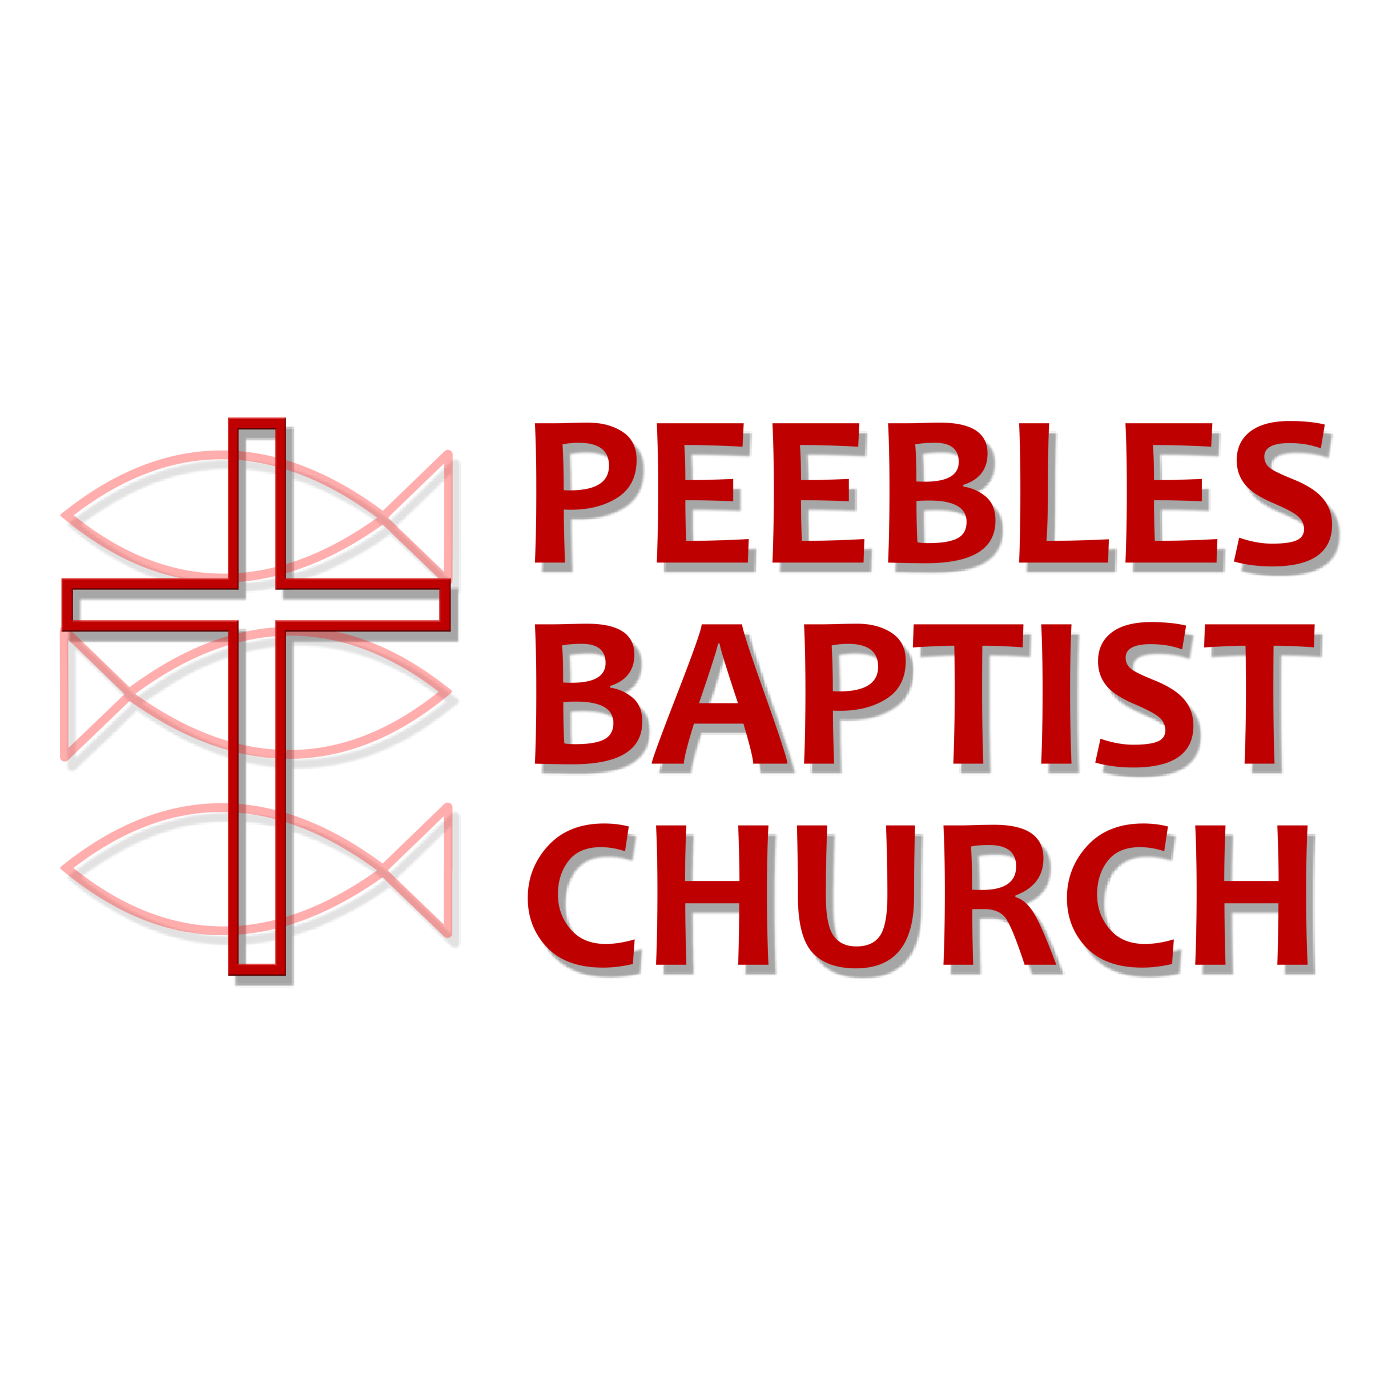 Peebles Baptist Church